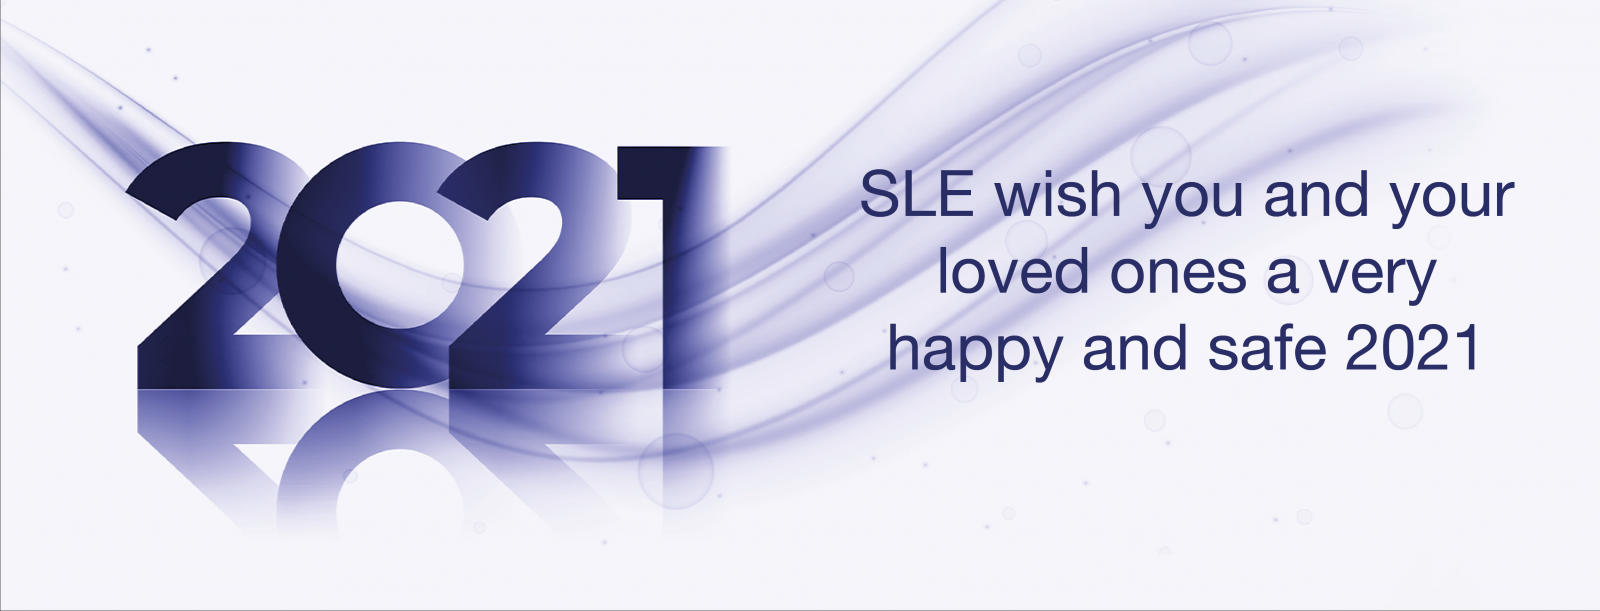 SLE wish you a happy and safe New Year